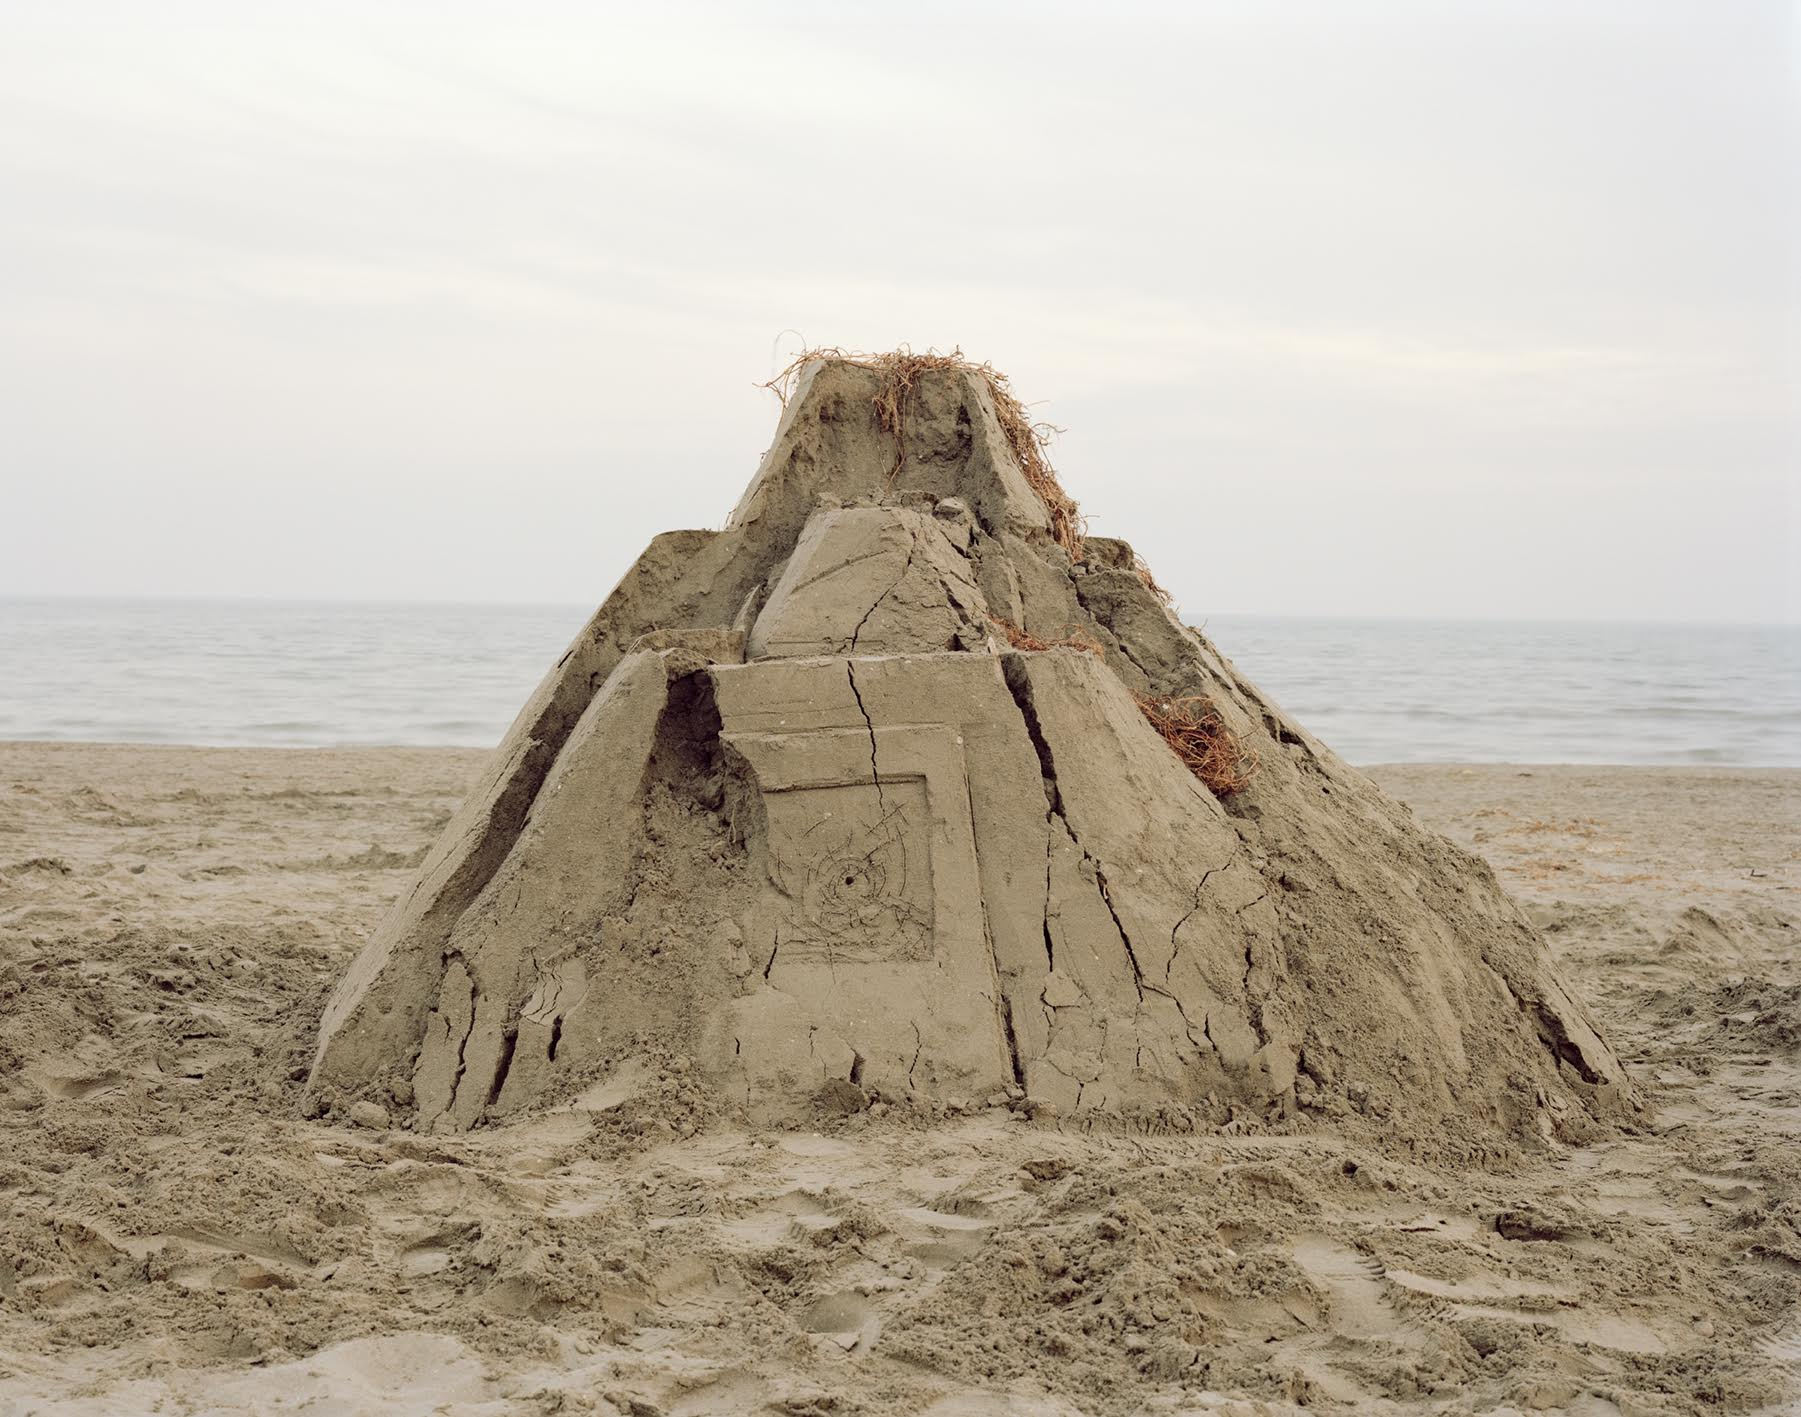 Alessandro Sambini, I will build a stronghold, 2016, color photograph, 48 x 63cm